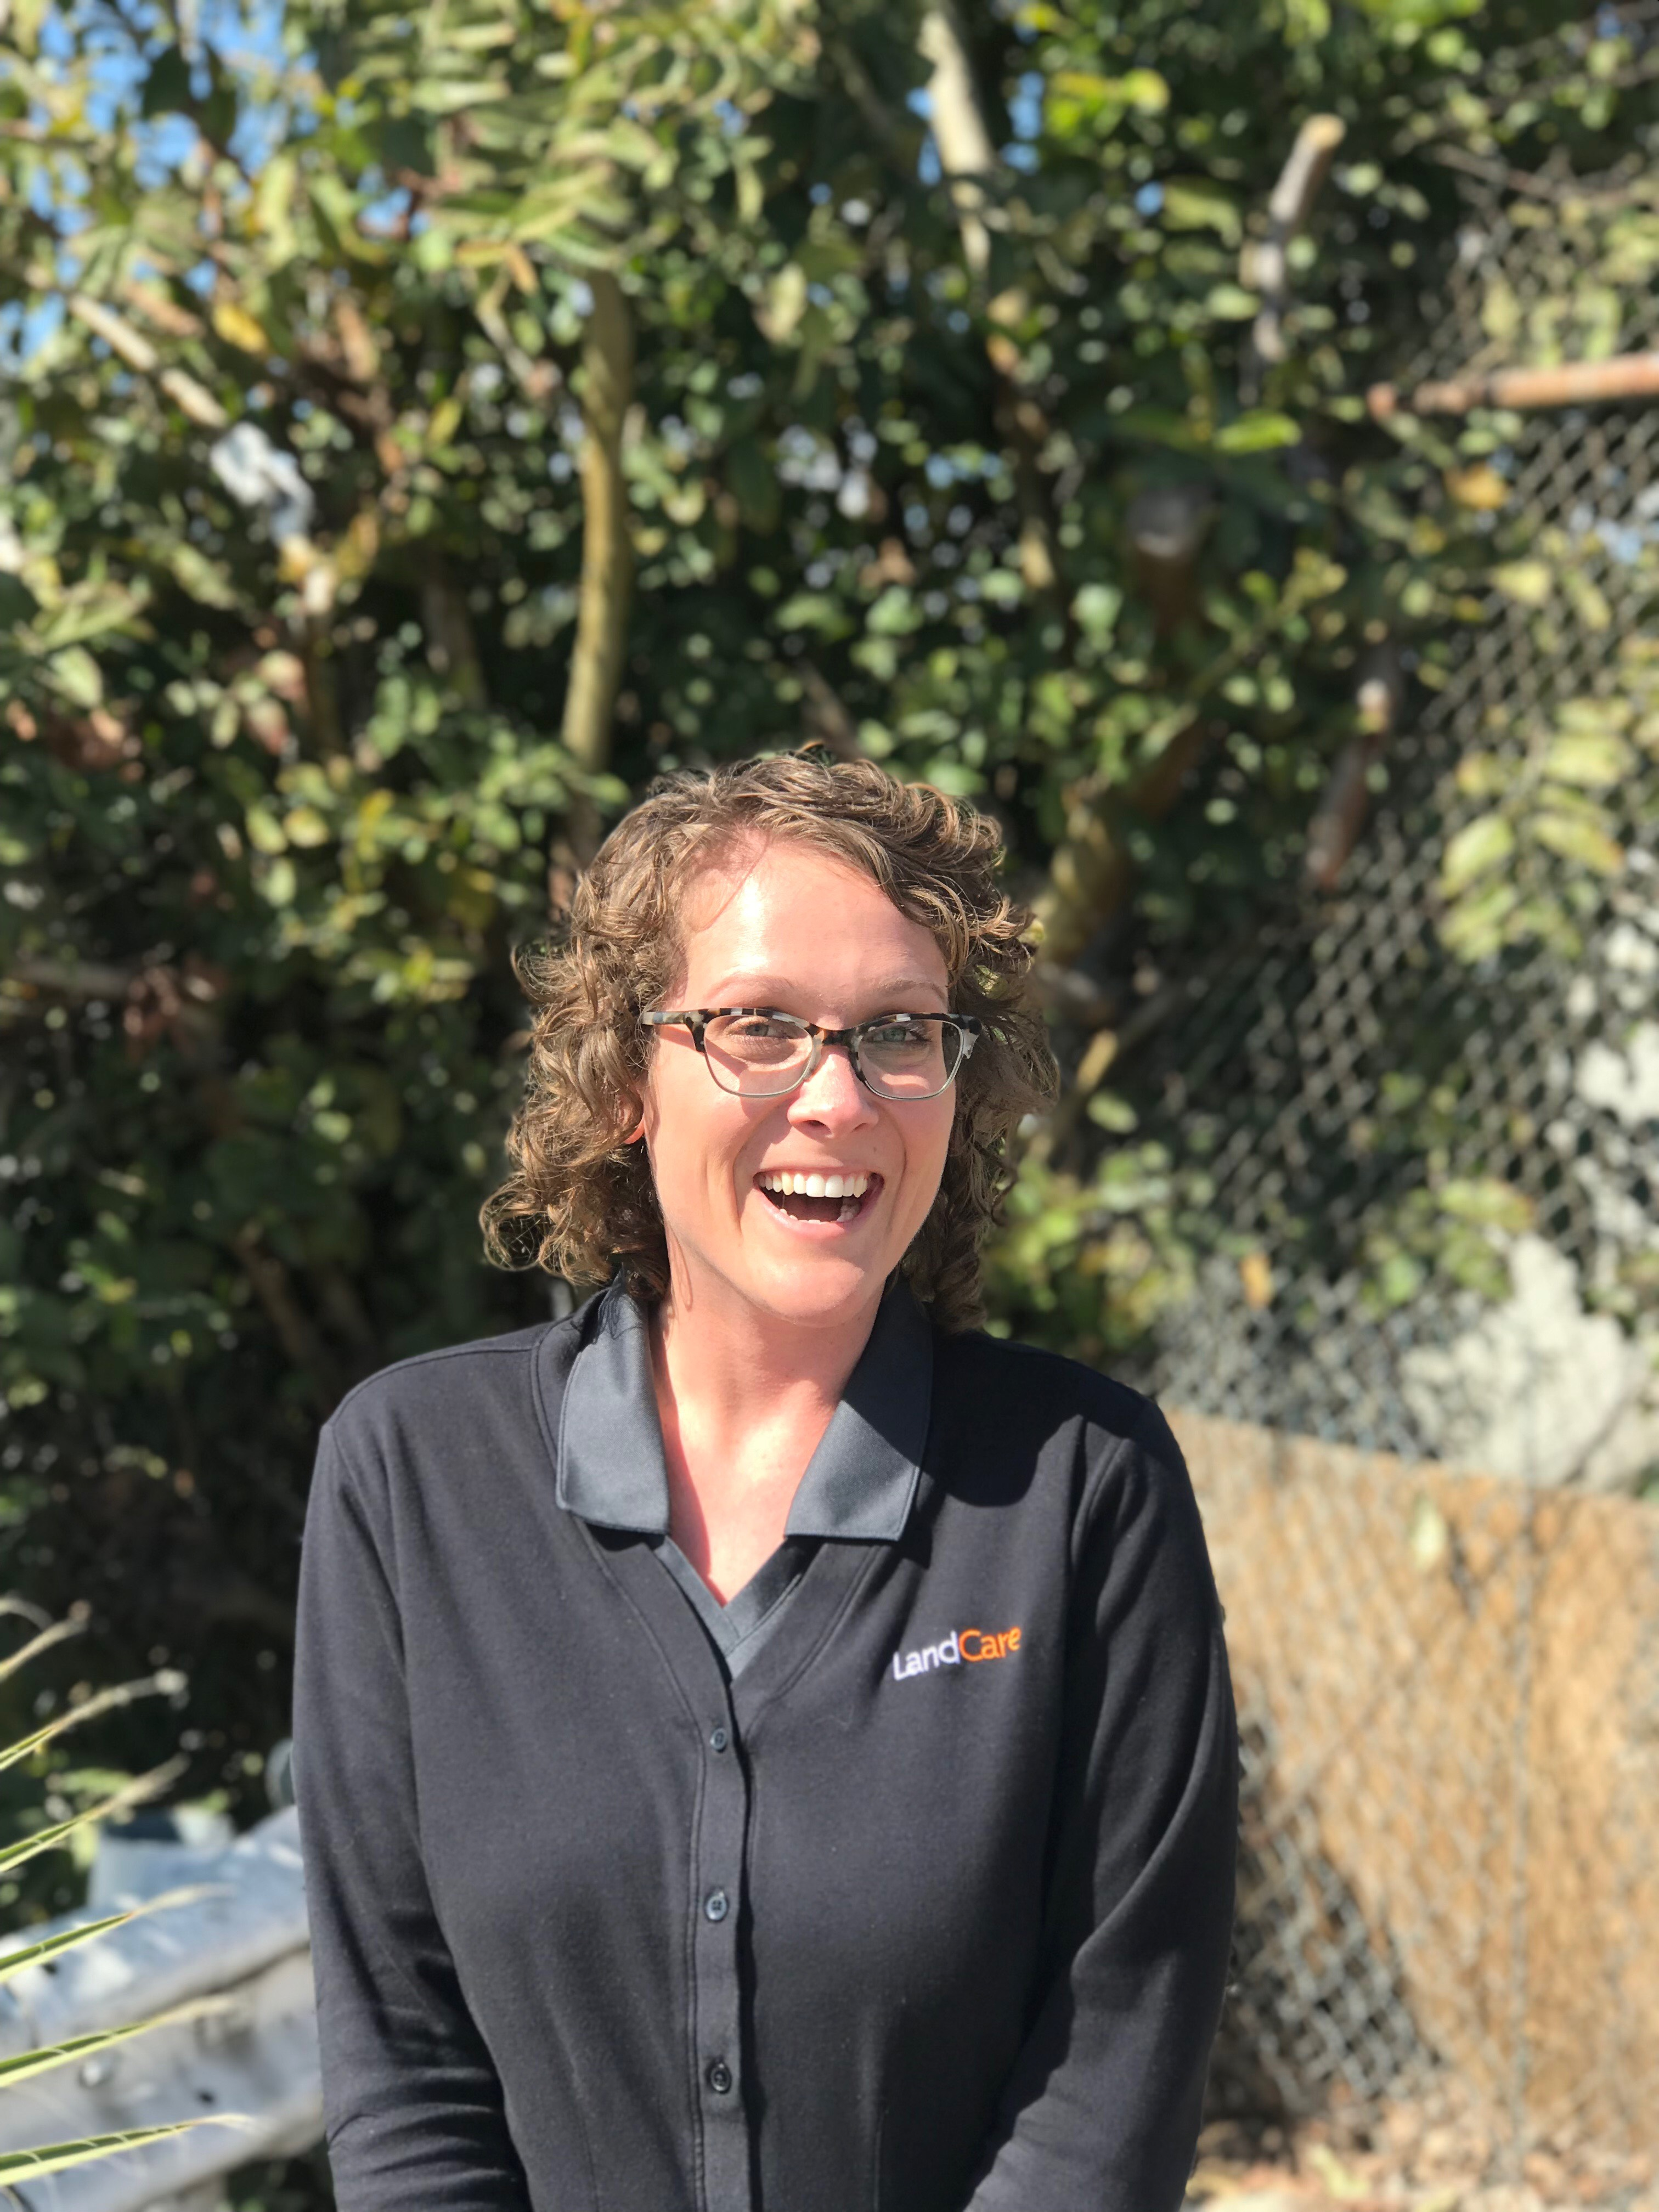 Ladies of LandCare: Zoe Jacobson